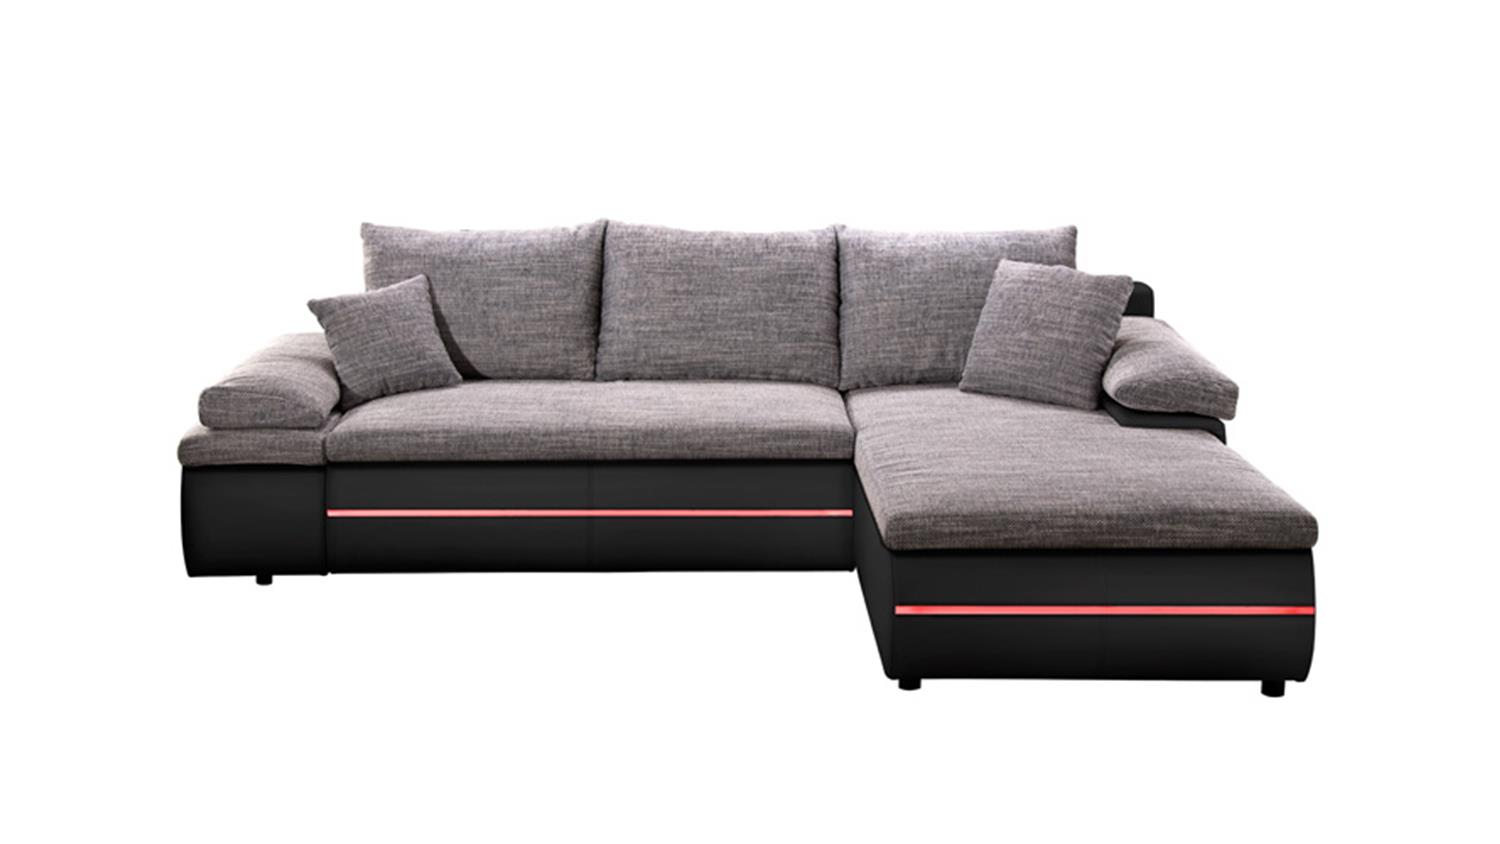 ecksofa bowie grau schwarz inkl rgb und bettfunktion. Black Bedroom Furniture Sets. Home Design Ideas